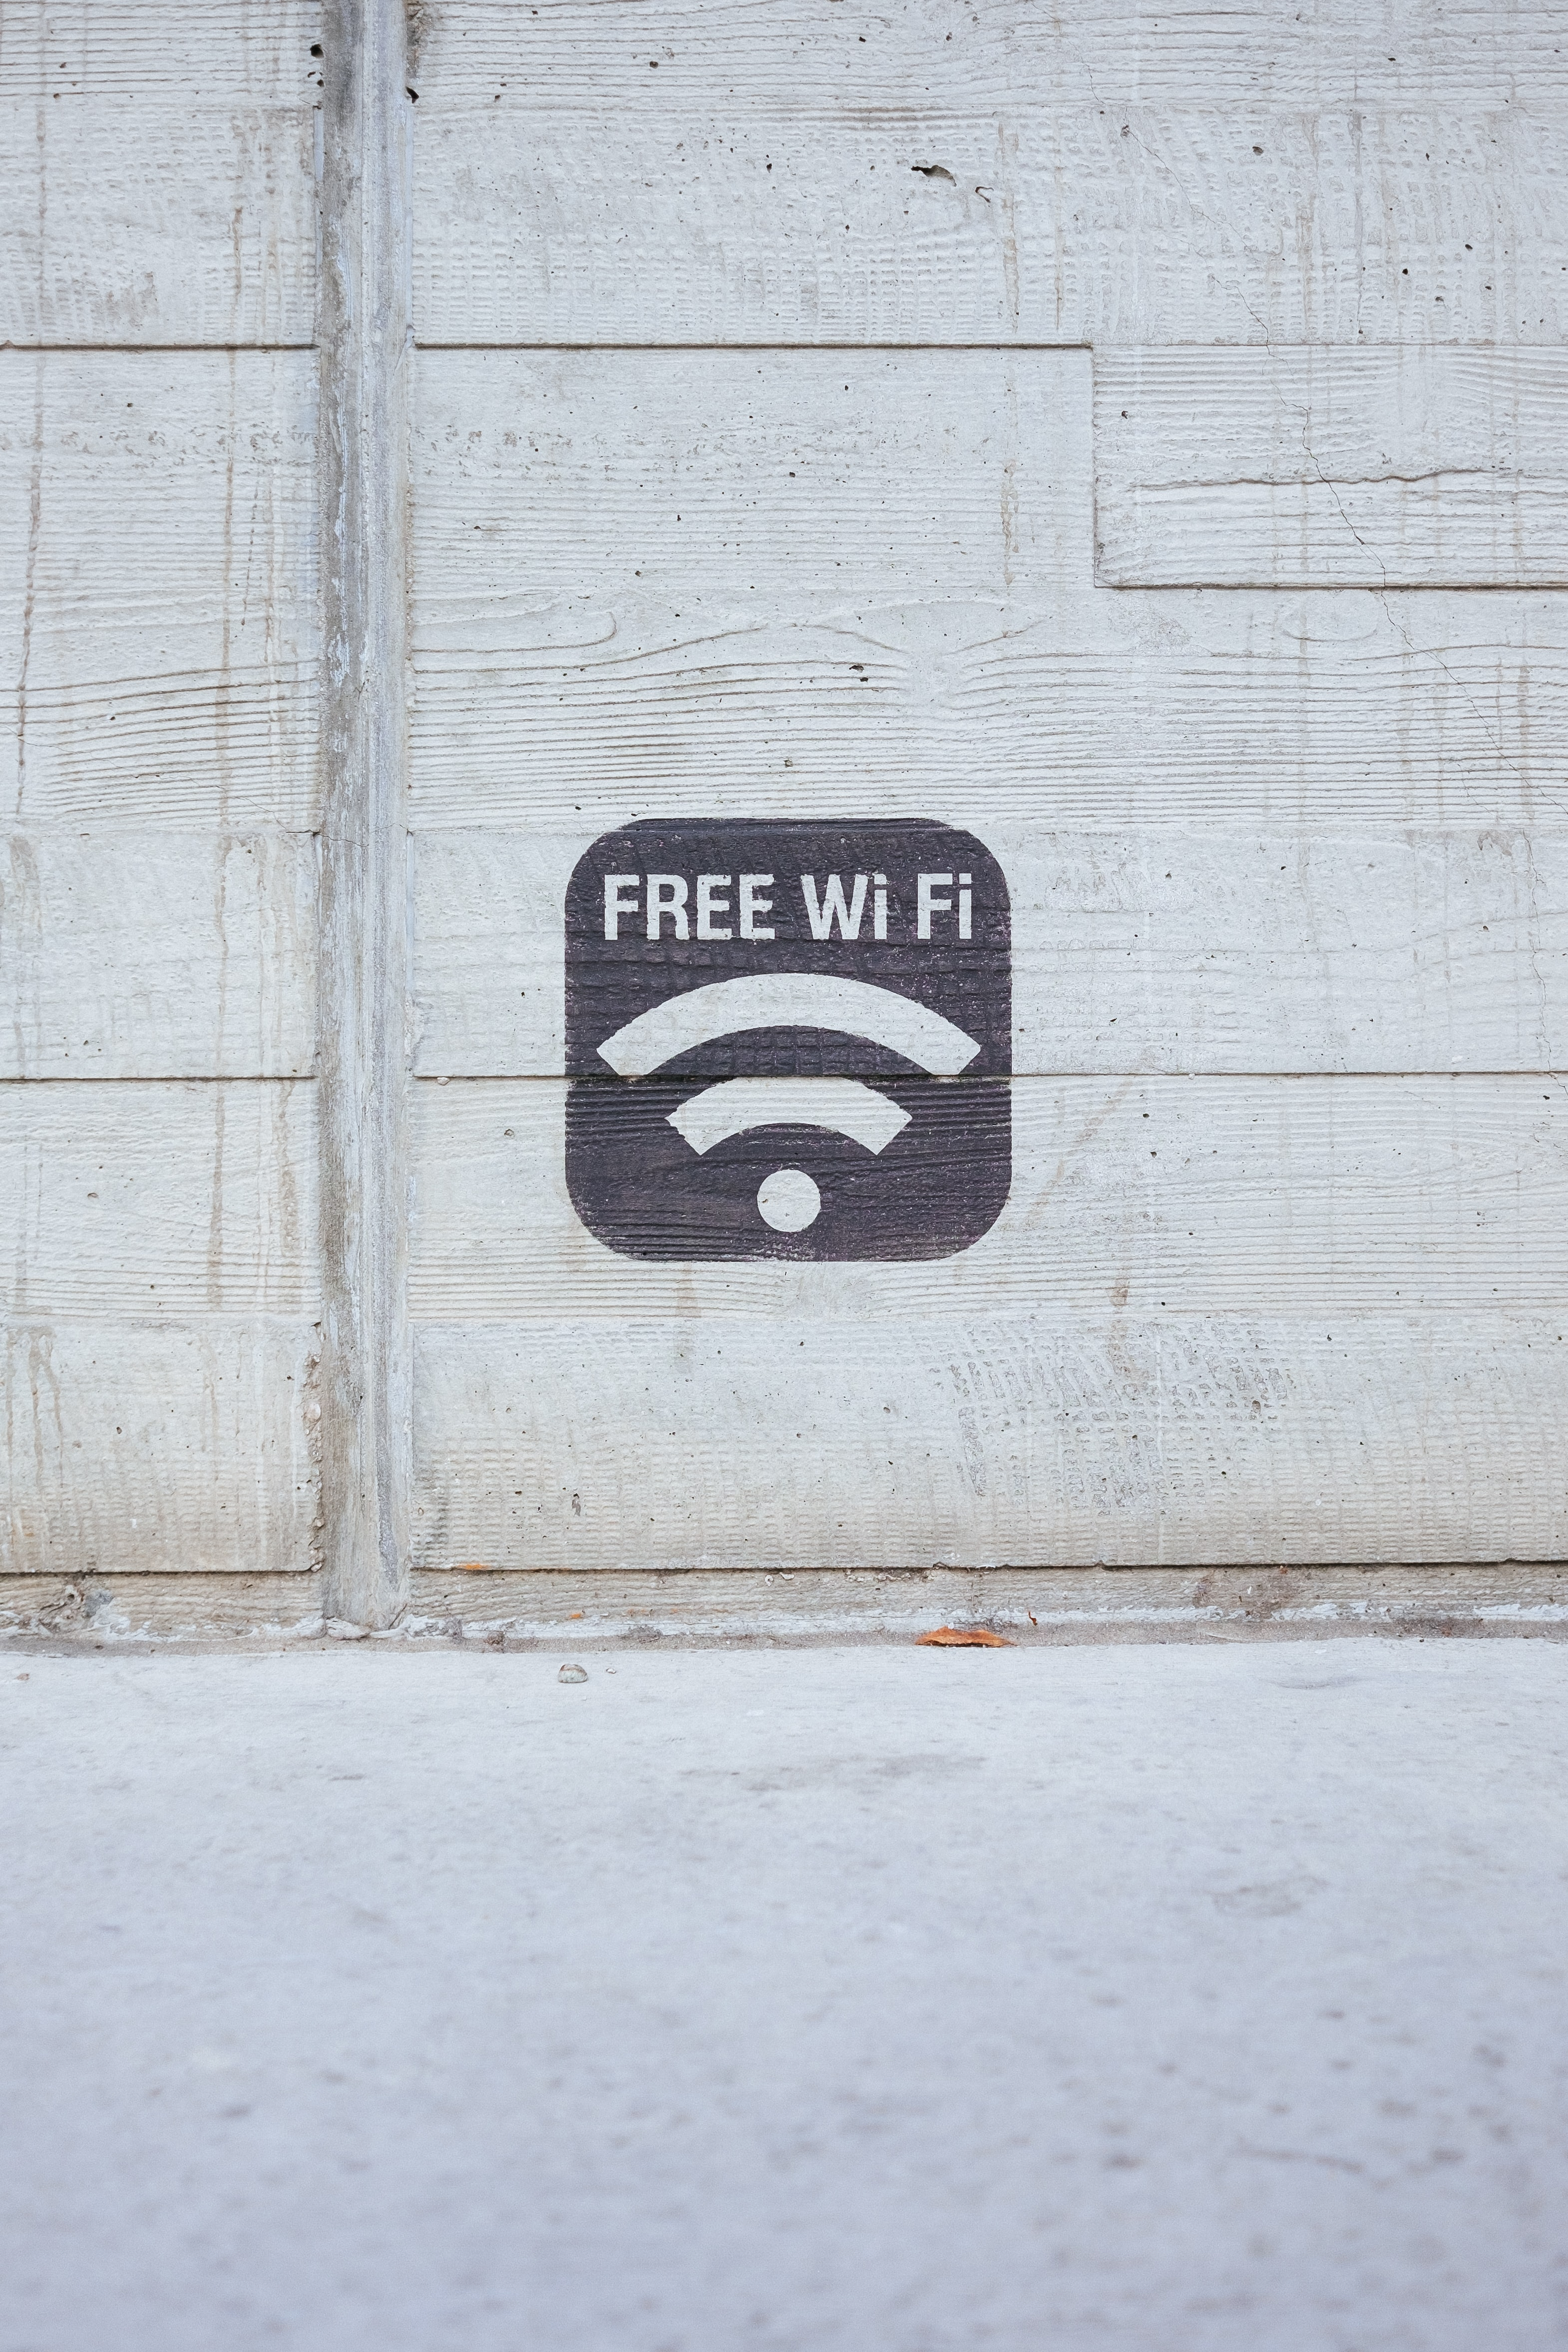 CCPL offers free Wi-Fi outside of library buildings for public use